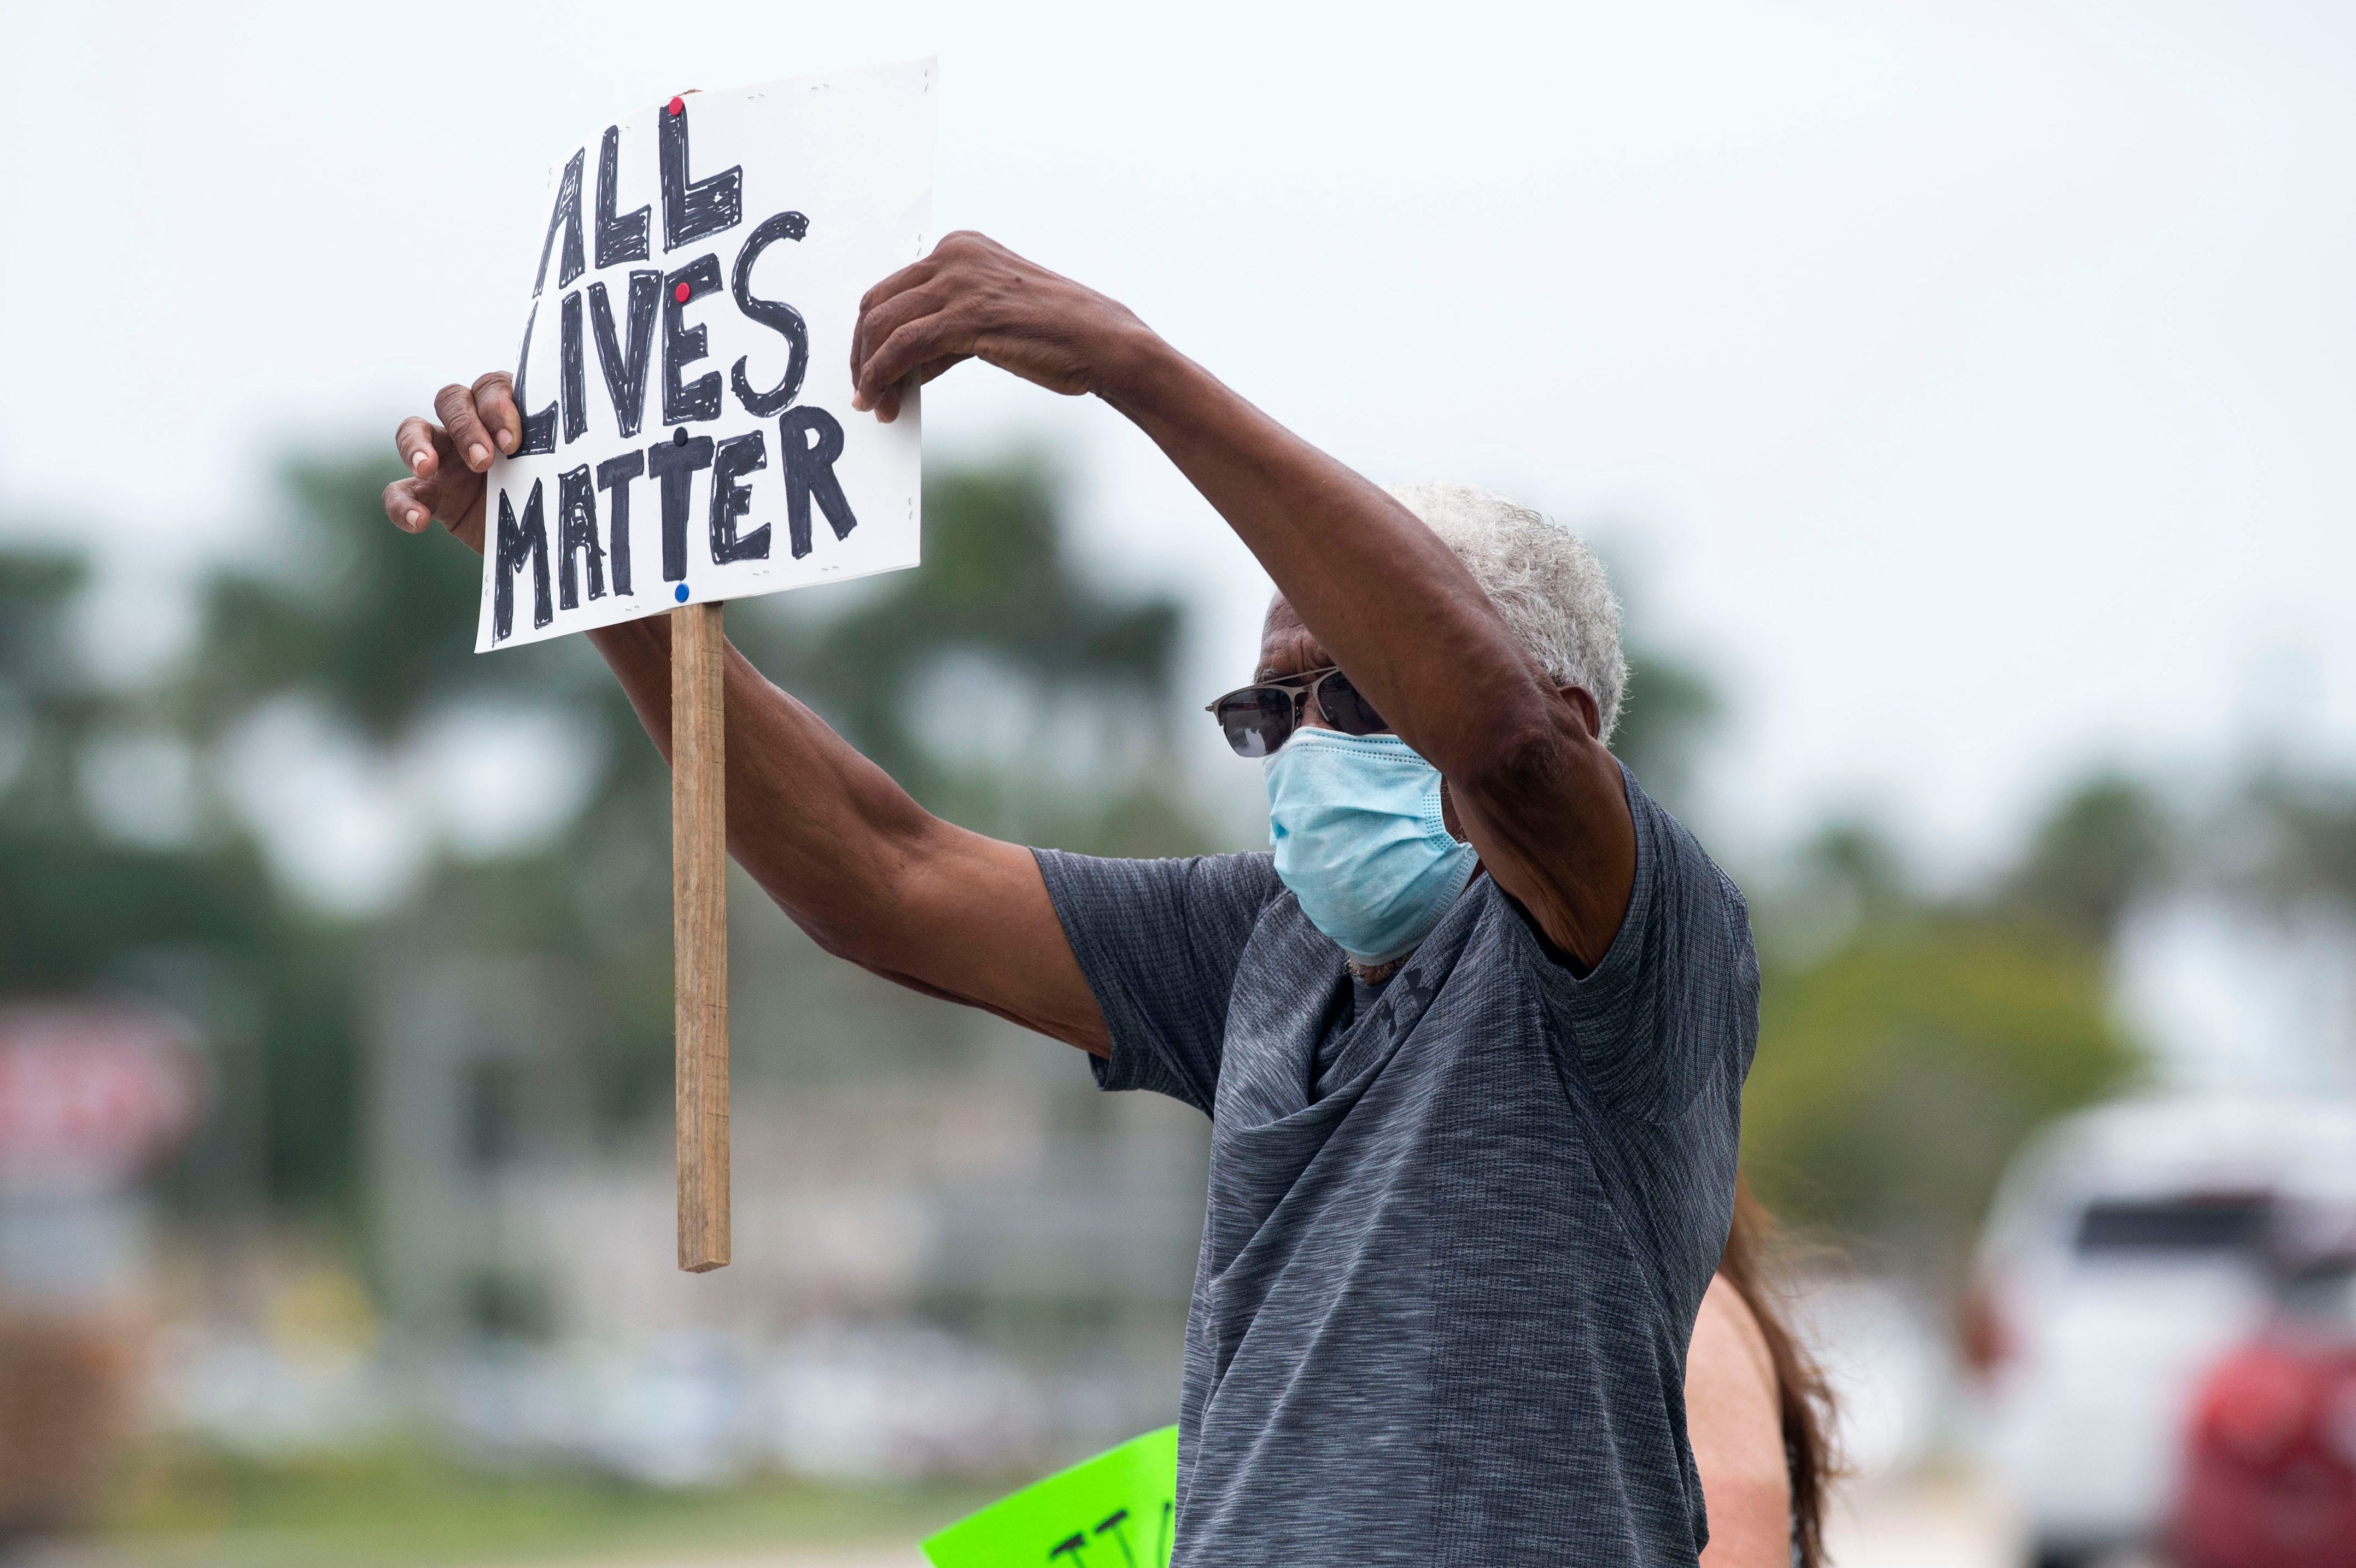 """Germaine Patterson, of Martin County, holds up a sign that says """"all lives matter"""" on one side and """"also your vote matters"""" on the other during a Black Lives Matter protest along U.S. 1 at the intersection of Southeast Luckhardt Street on Saturday, June 6, 2020, in Stuart. """"I was out last week and I also came out this week because my grandson was organizing,"""" Patterson said. His grandson, Robert Parent, organized the protest that drew more than 250 people."""